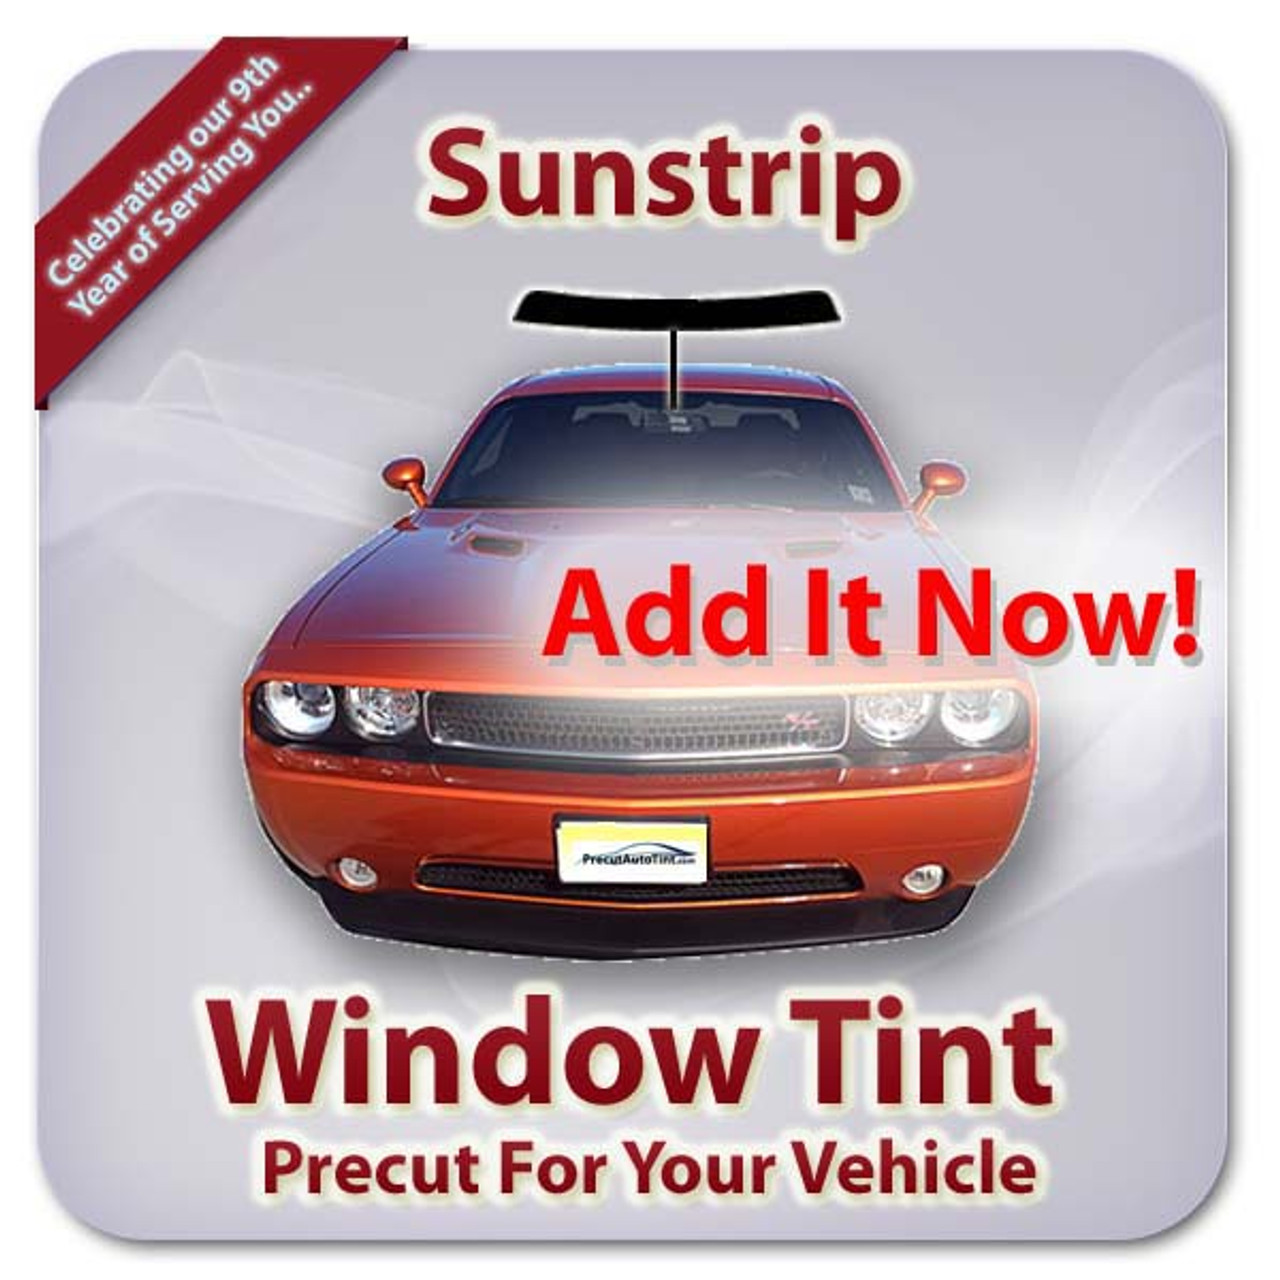 Add a sunstrip for your windshield.